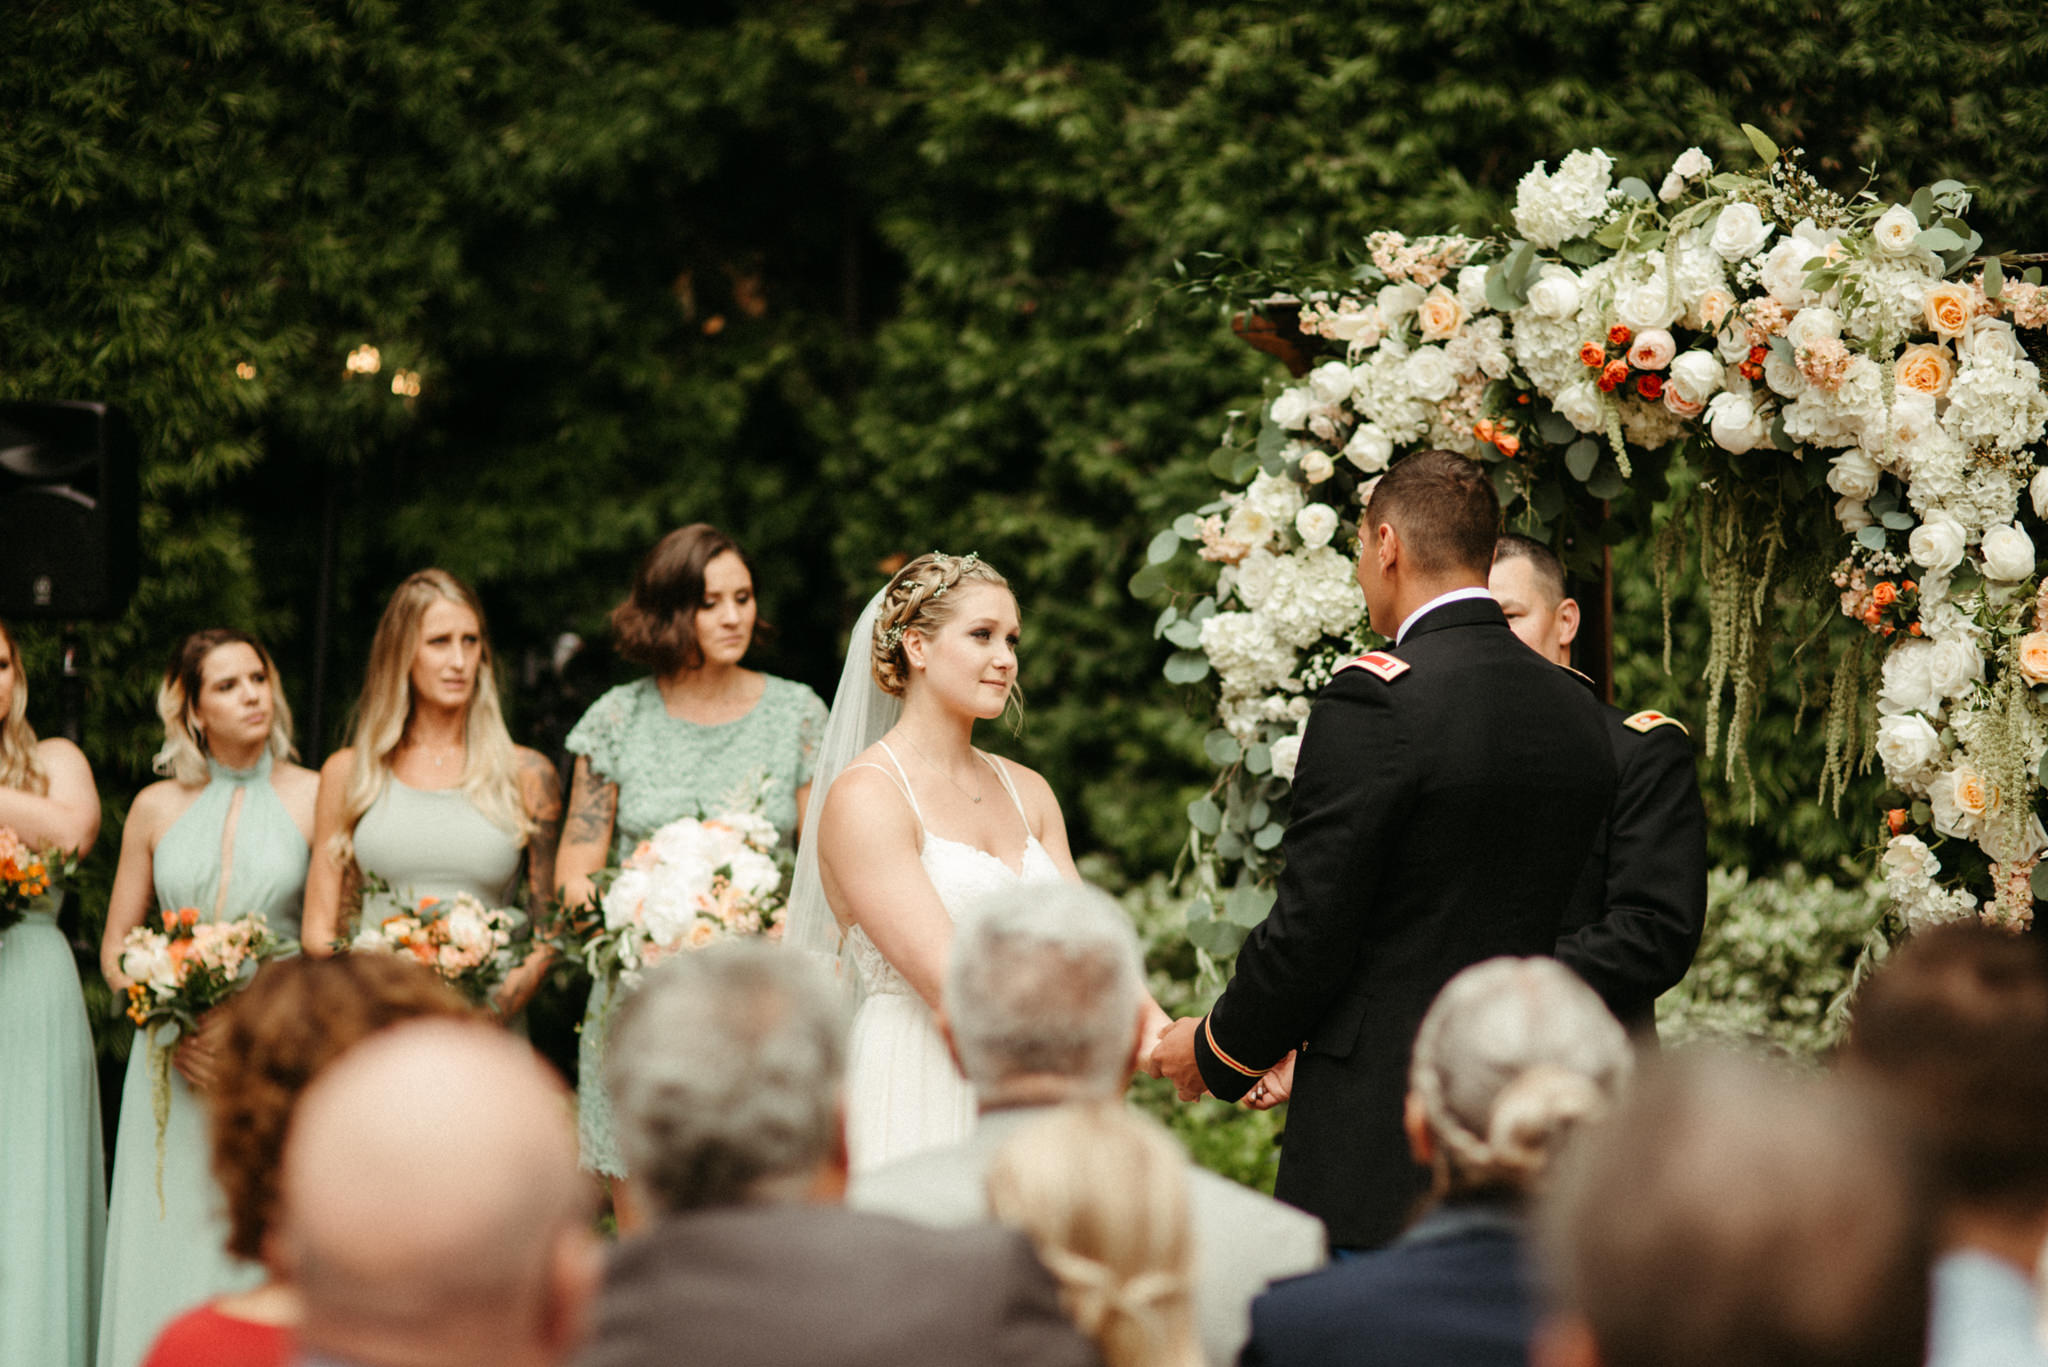 Zach and Rosalie - Franciscan Garden Wedding - San Juan Capistrano - The Mission - Southern California Wedding Photographer-2524.jpg